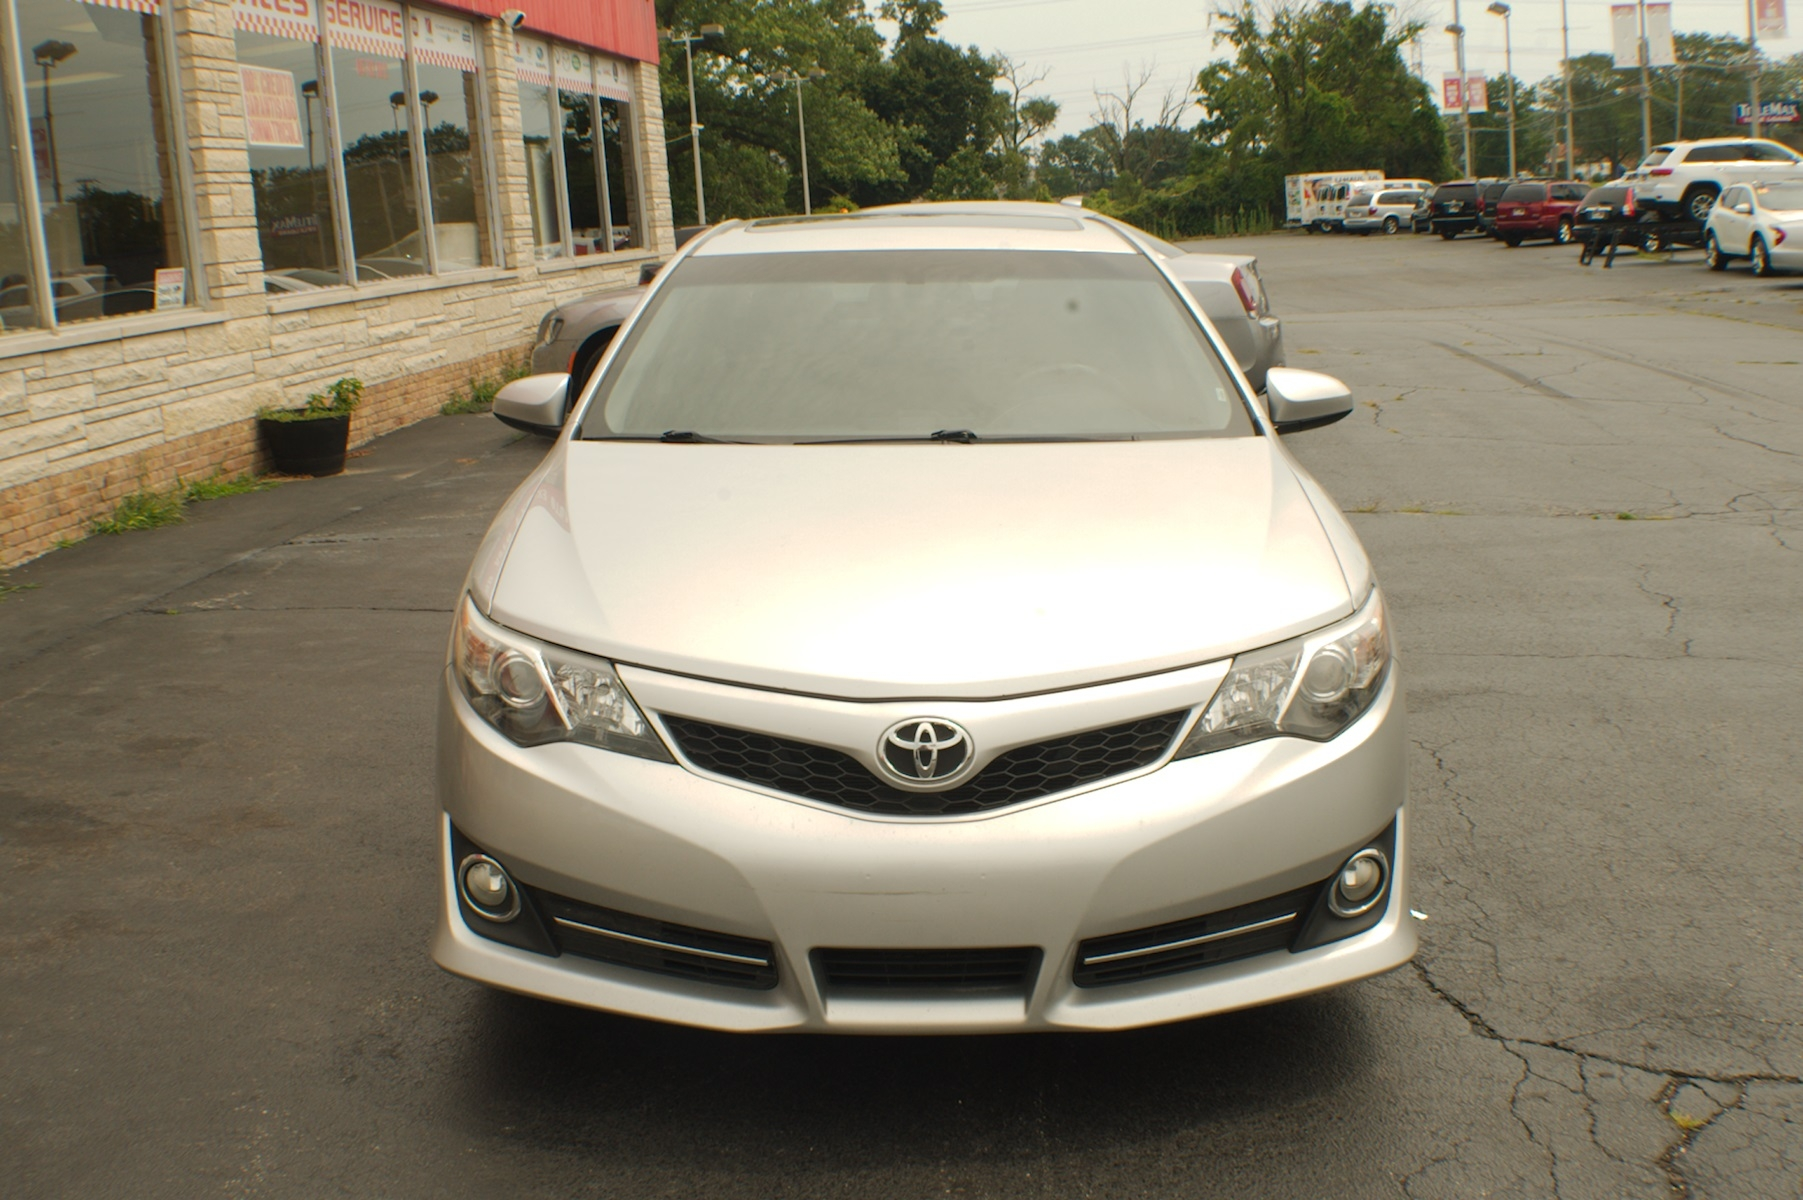 2012 Toyota Camry SE Silver Sedan used Car Sale Gurnee Kenosha Mchenry Chicago Illinois